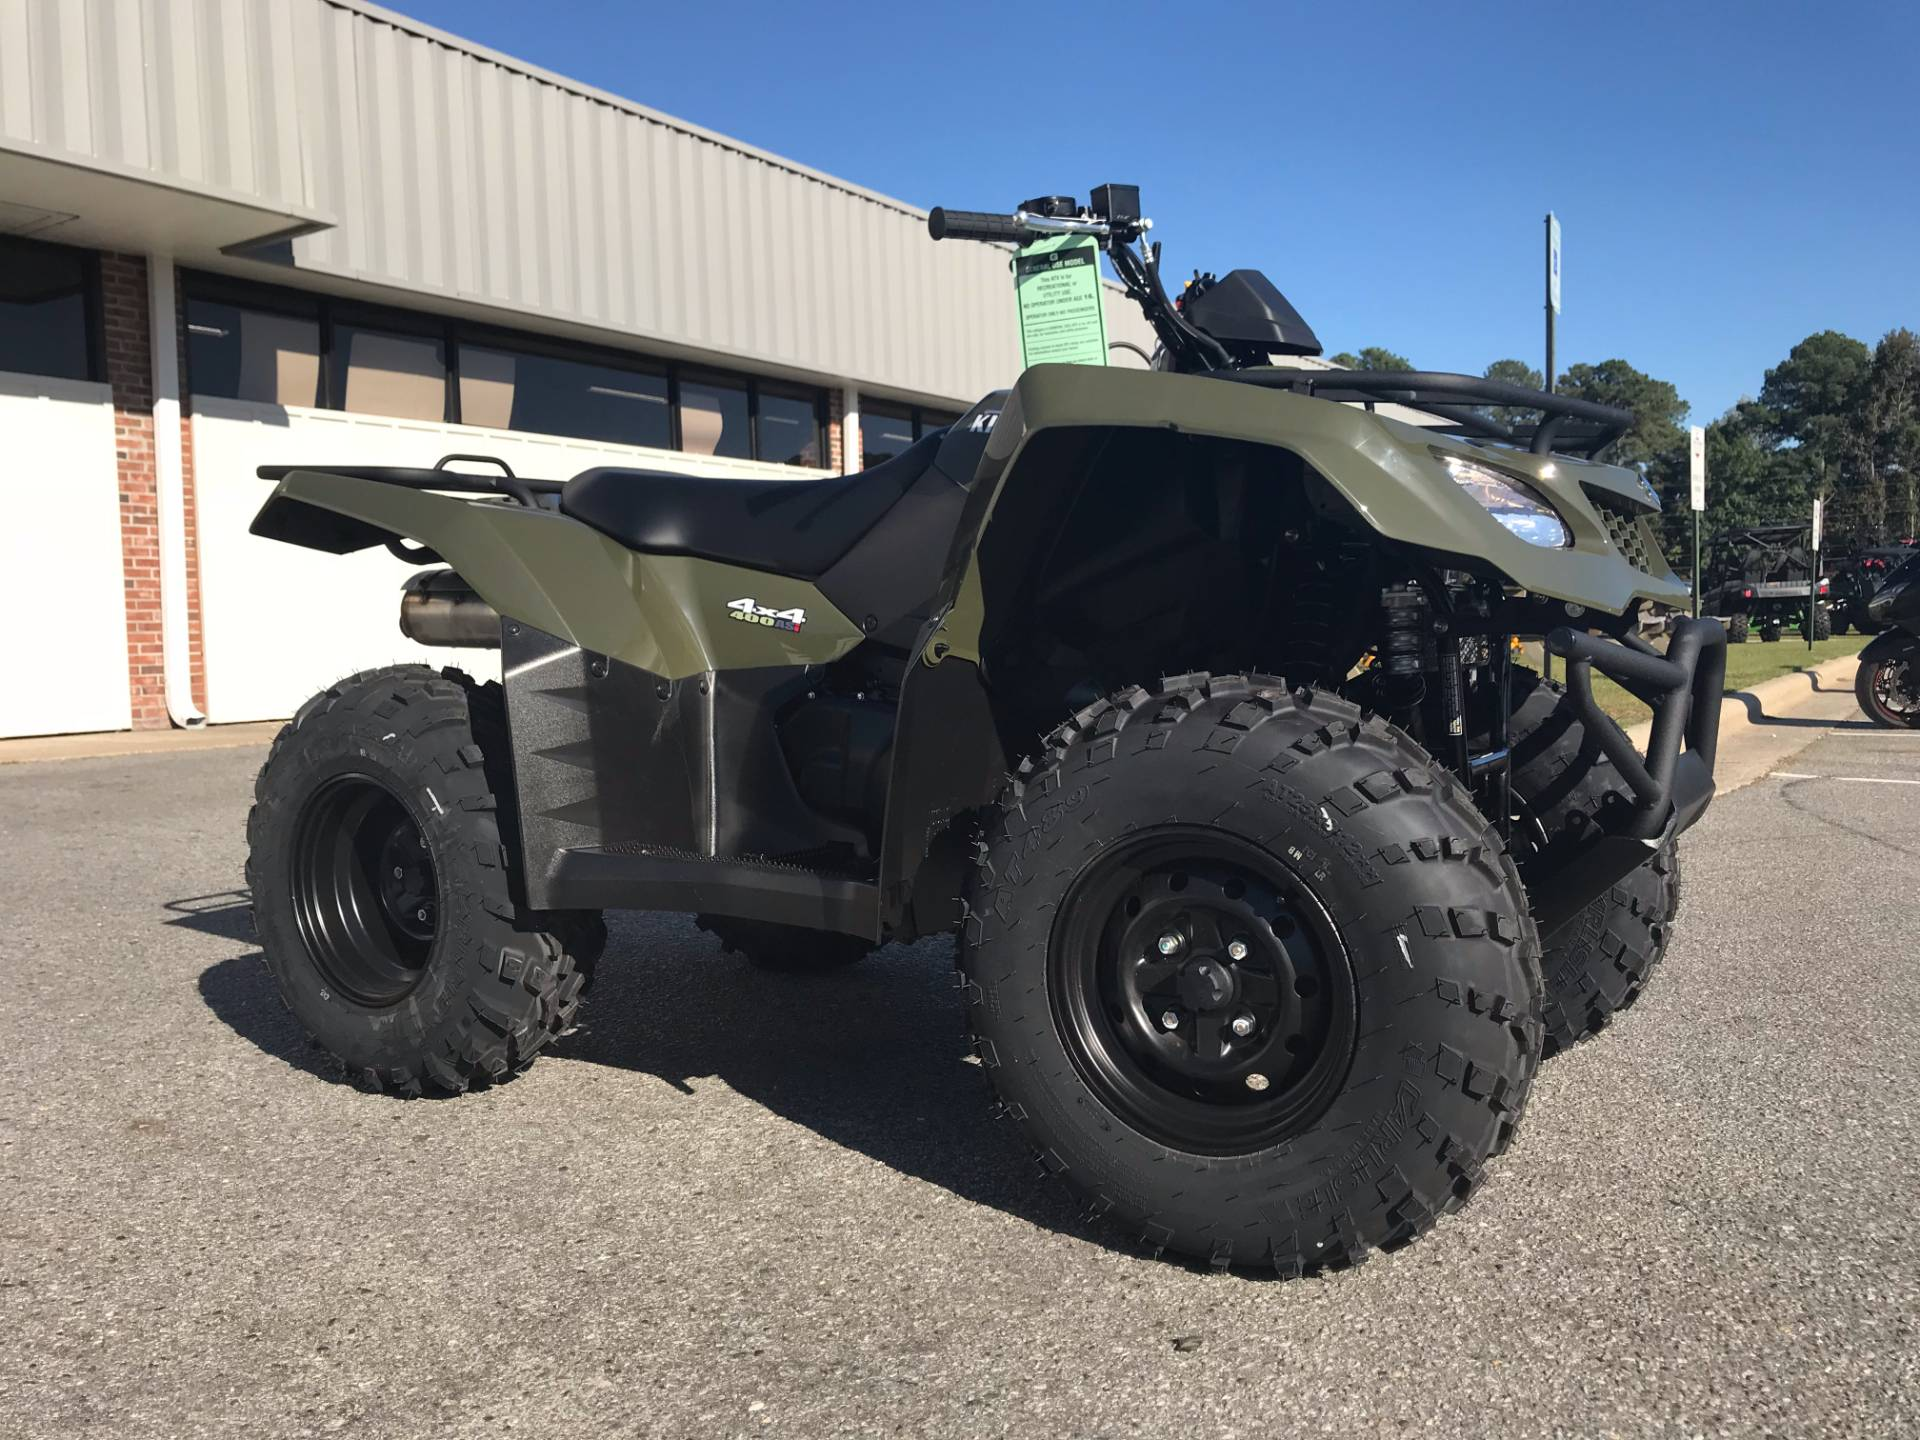 2018 Suzuki KingQuad 400ASi in Greenville, North Carolina - Photo 2